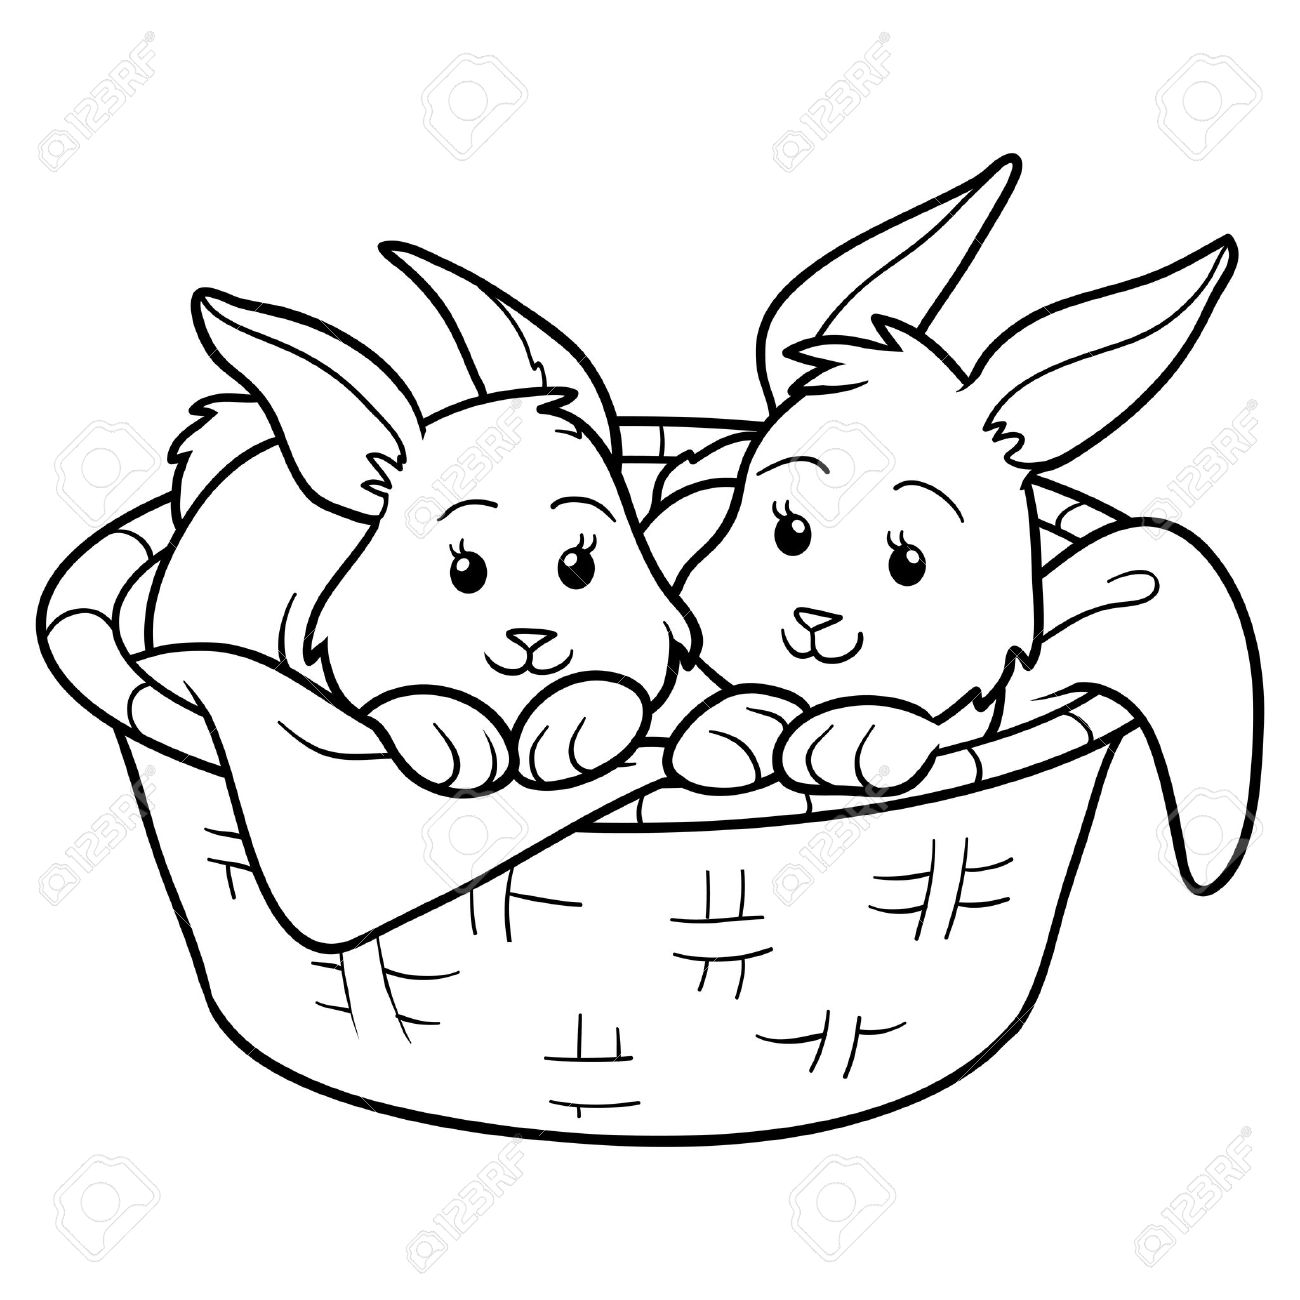 Game For Children Coloring Book Rabbits In Basket Stock Vector